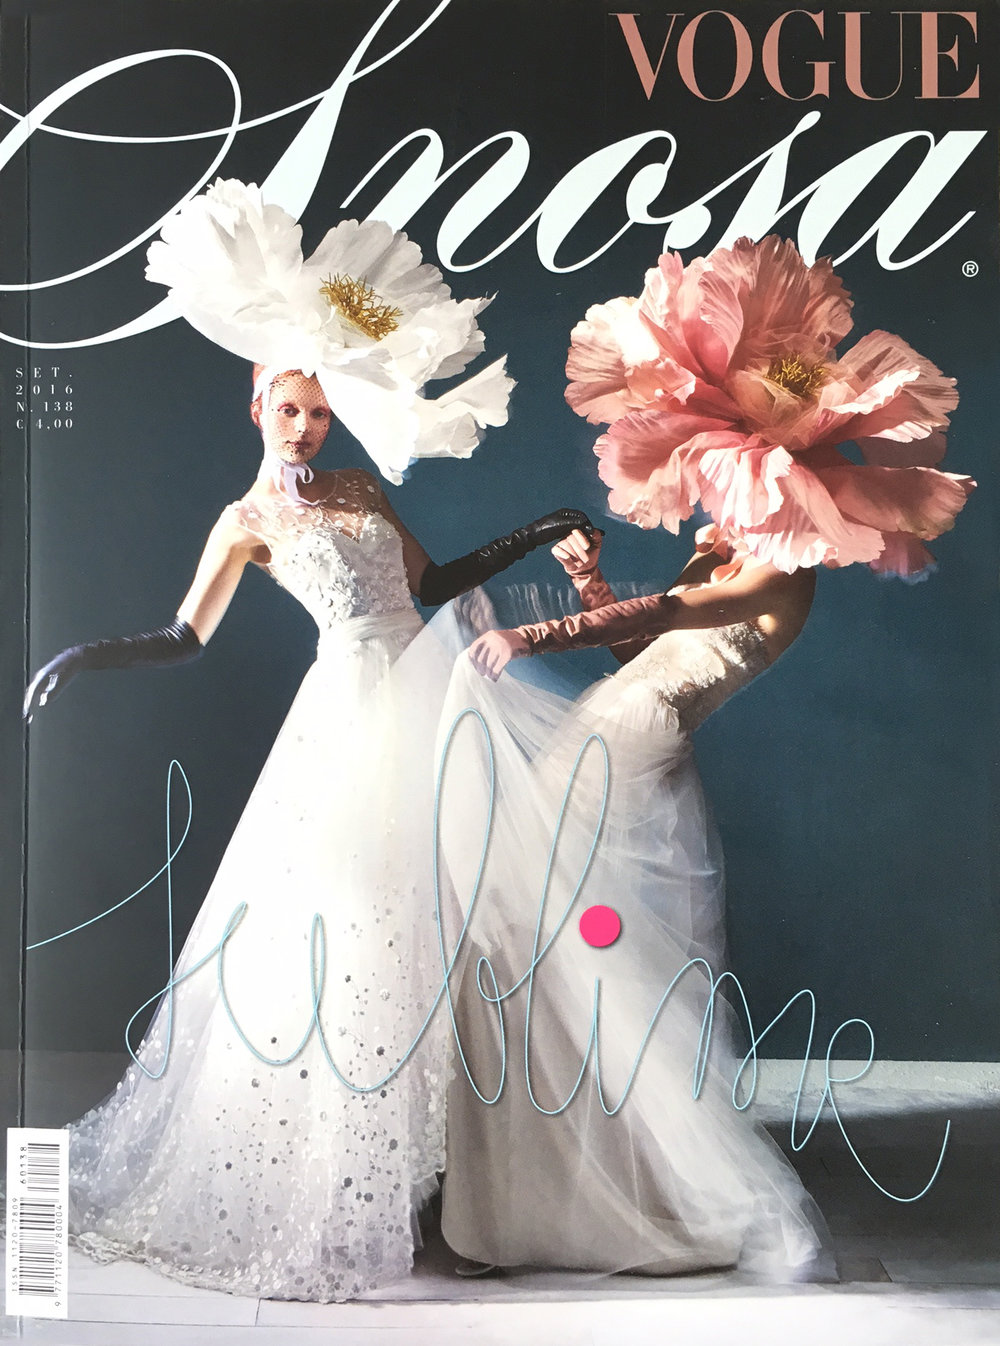 Vogue Sposa - September 2016 cover.jpg